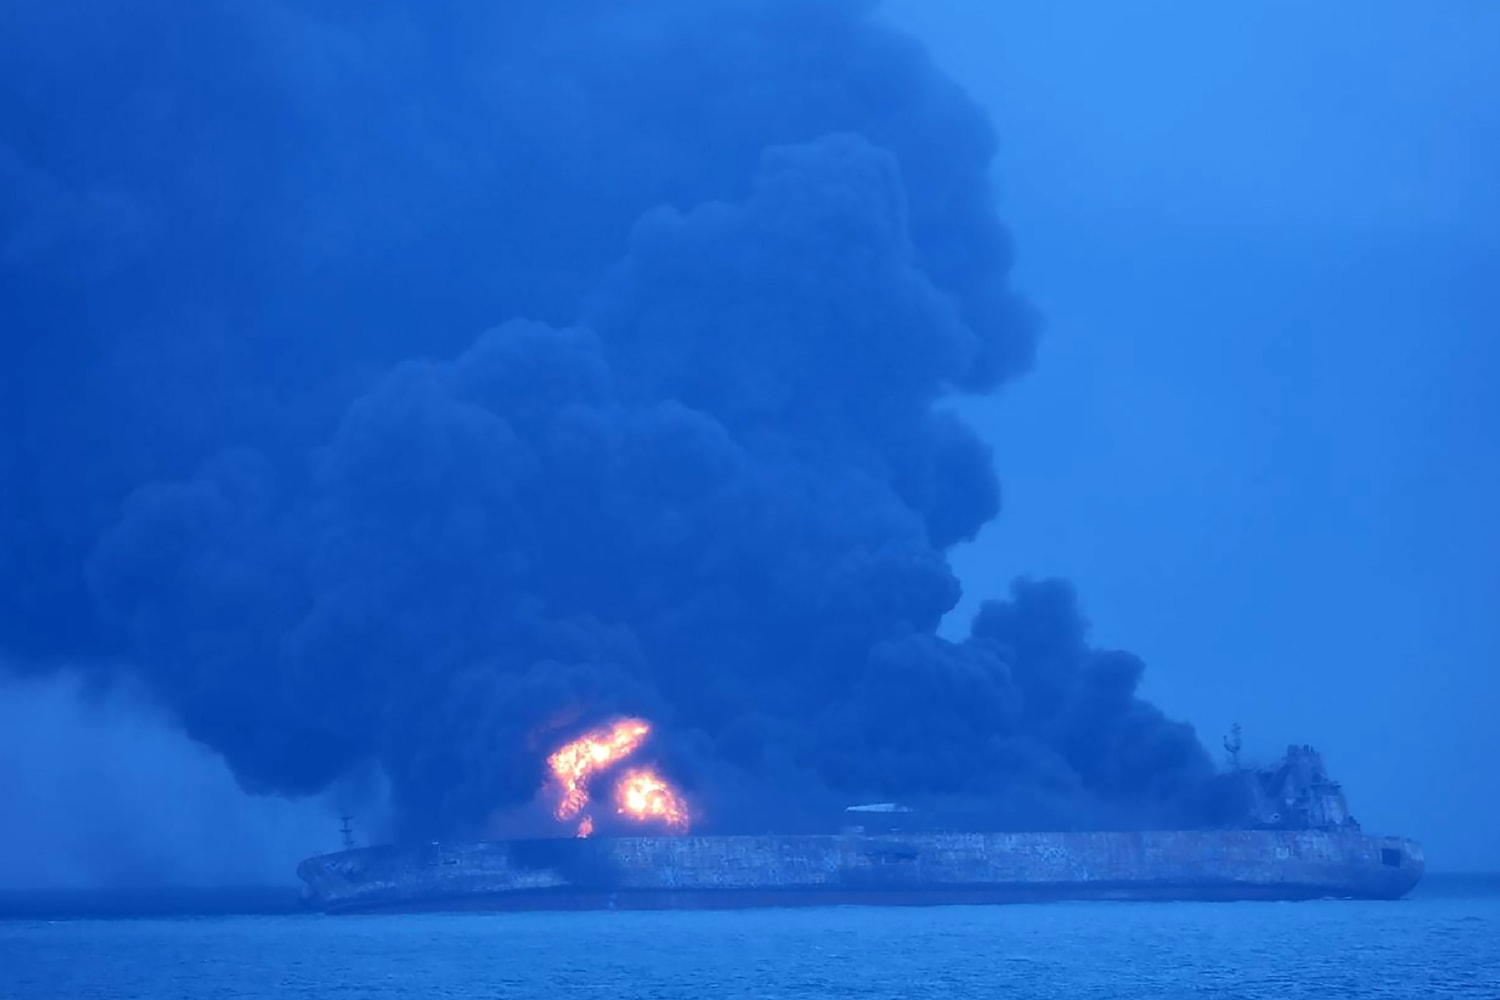 Image SKOREA-CHINA-IRAN-ACCIDENT-SHIP